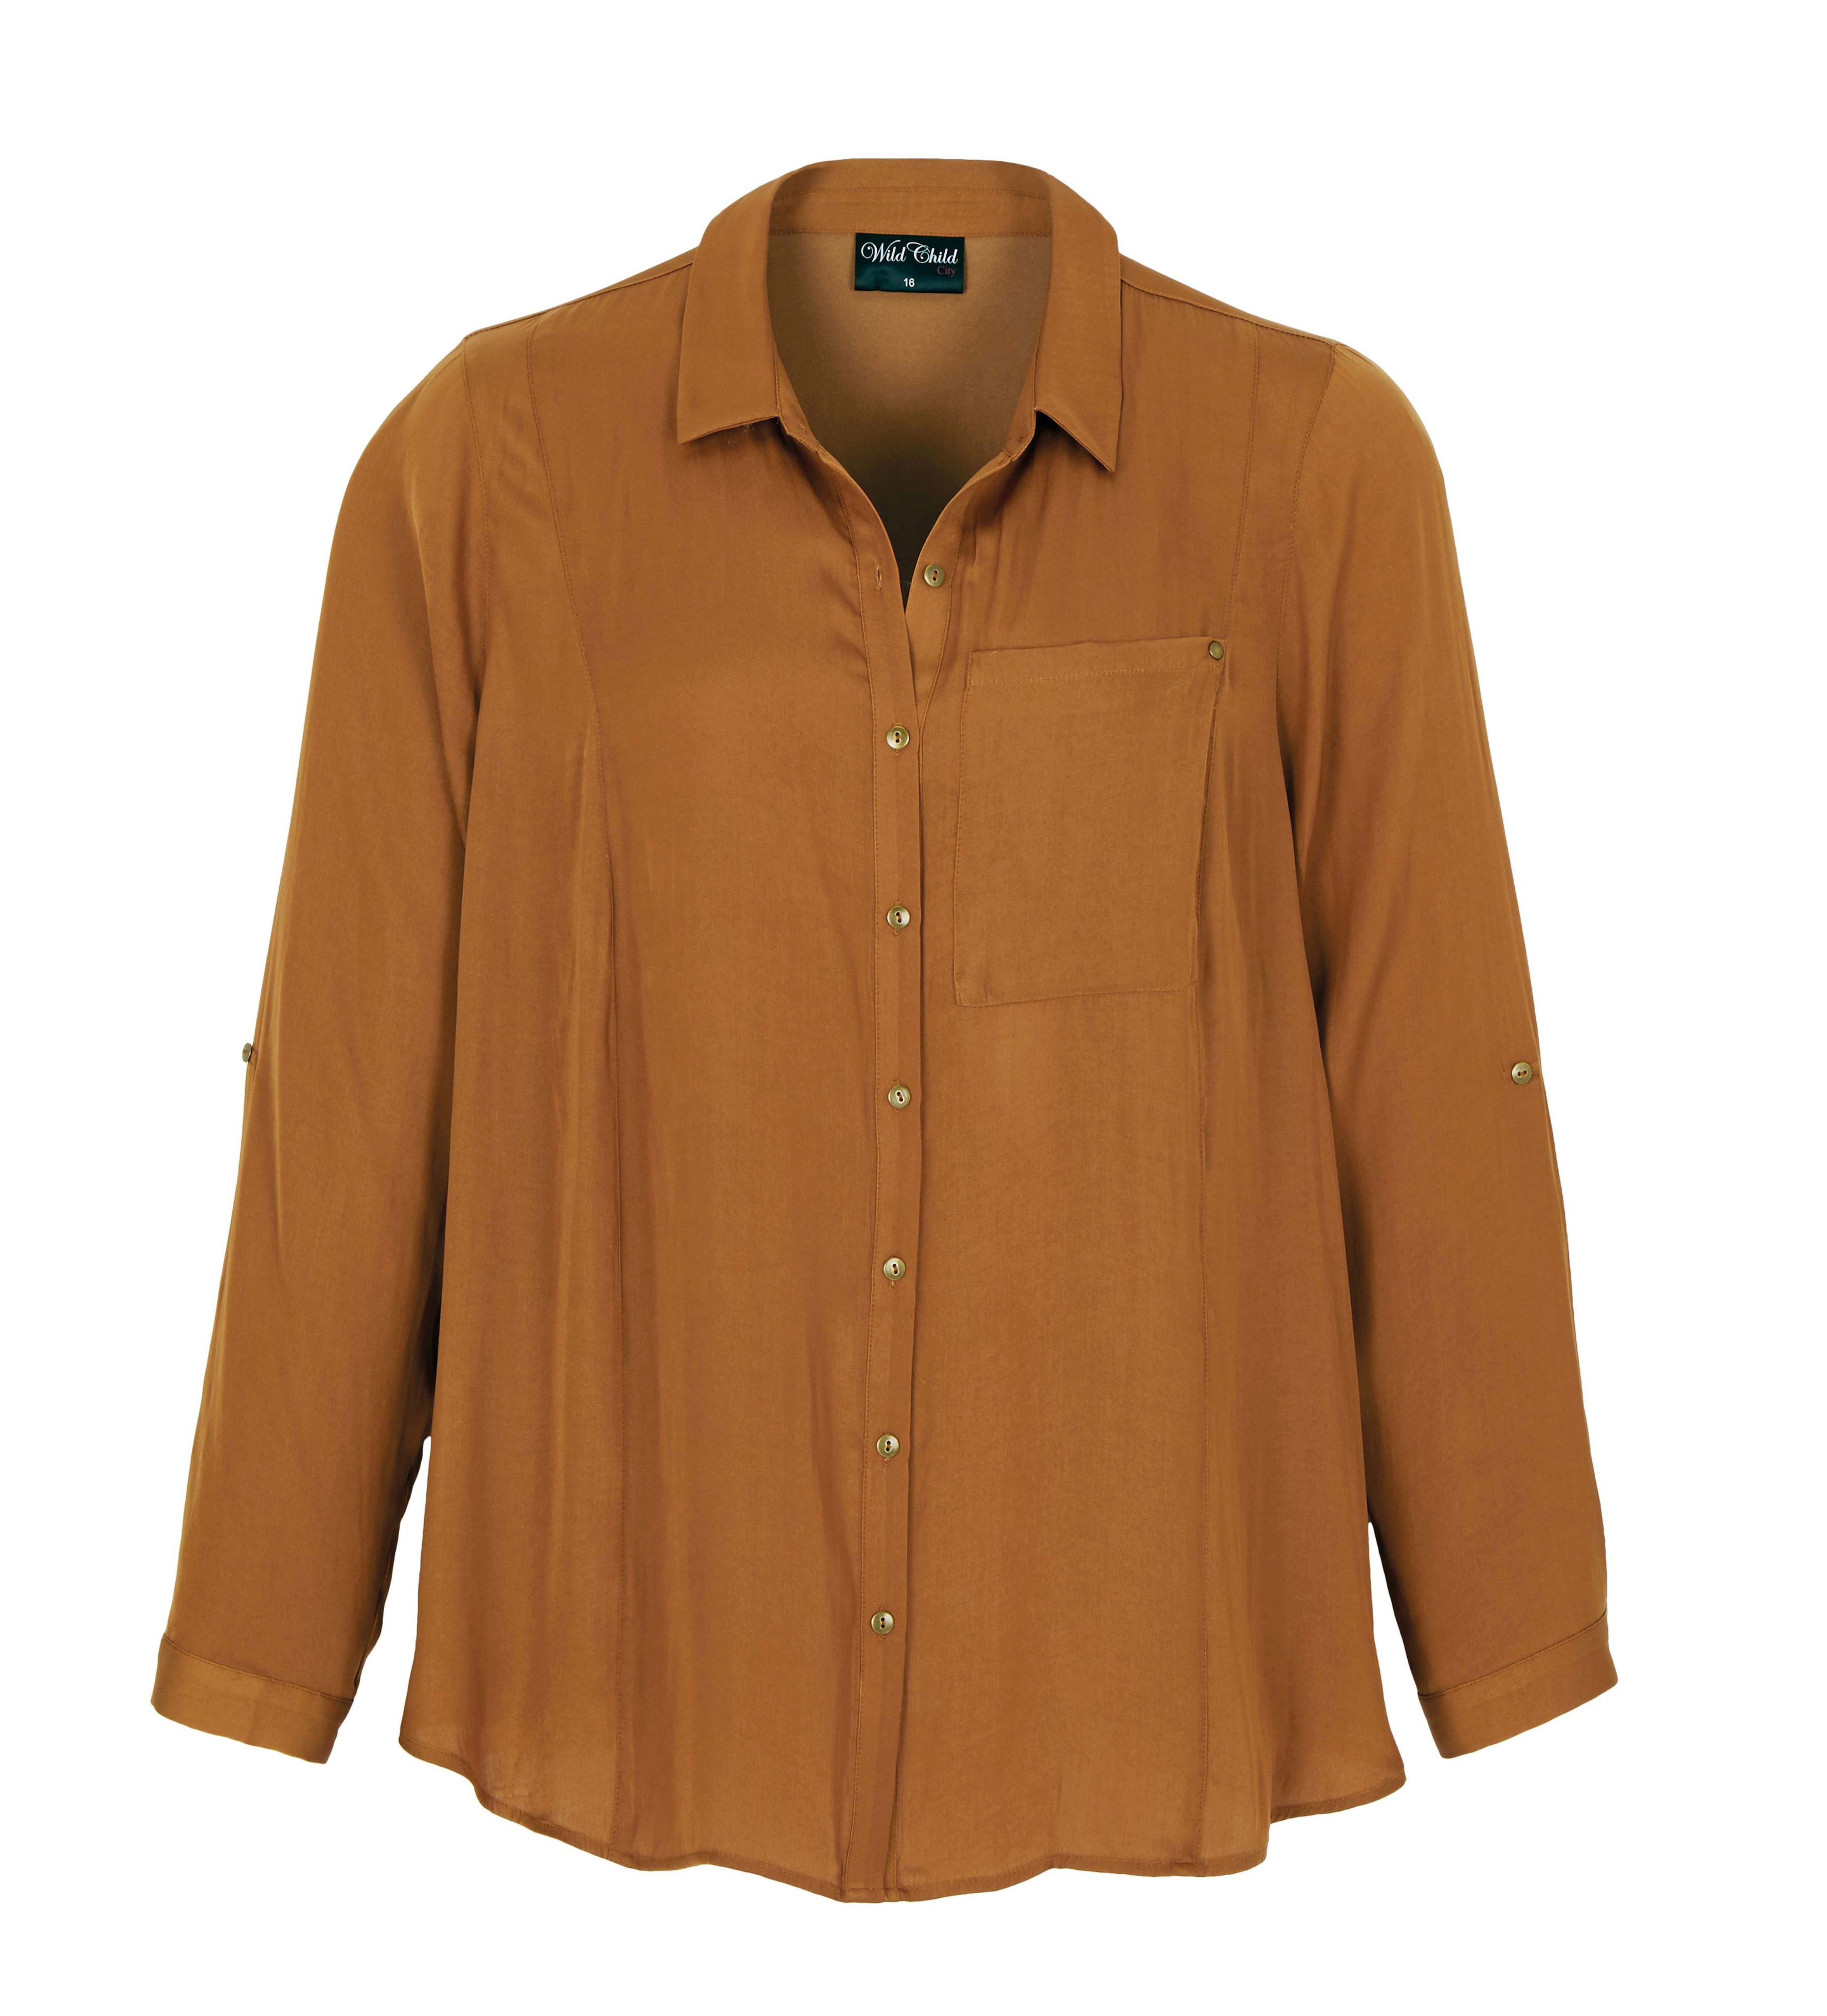 6077825 Wild Child City Roll Slv Peached Gold Shirt $69.99 Instore Feb 05 2016